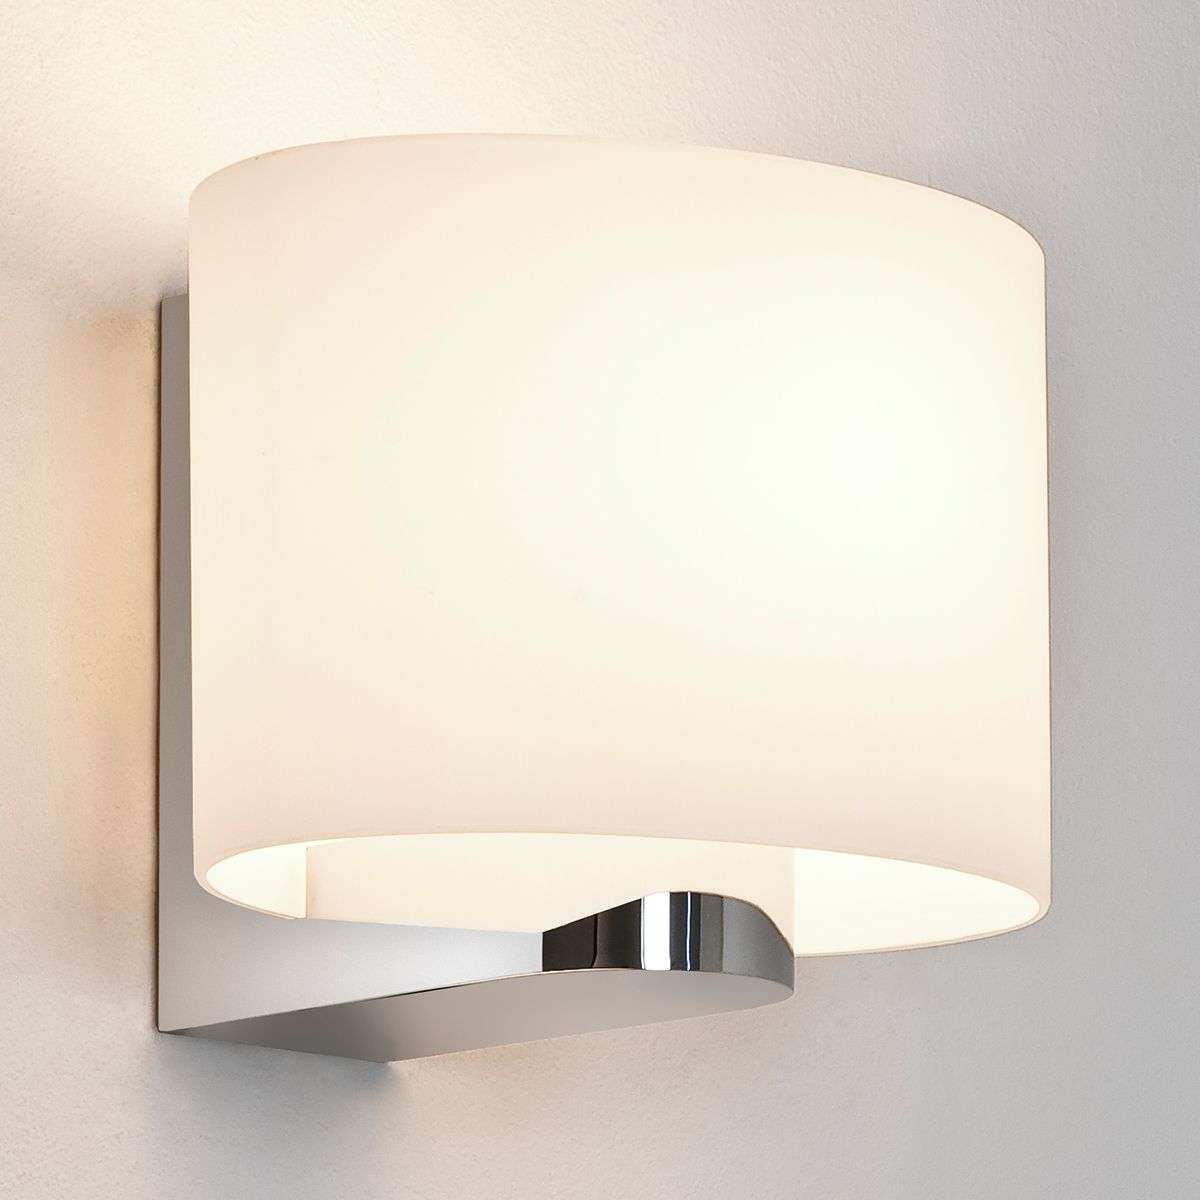 Siena Oval Wall Light Beautiful-1020006-32